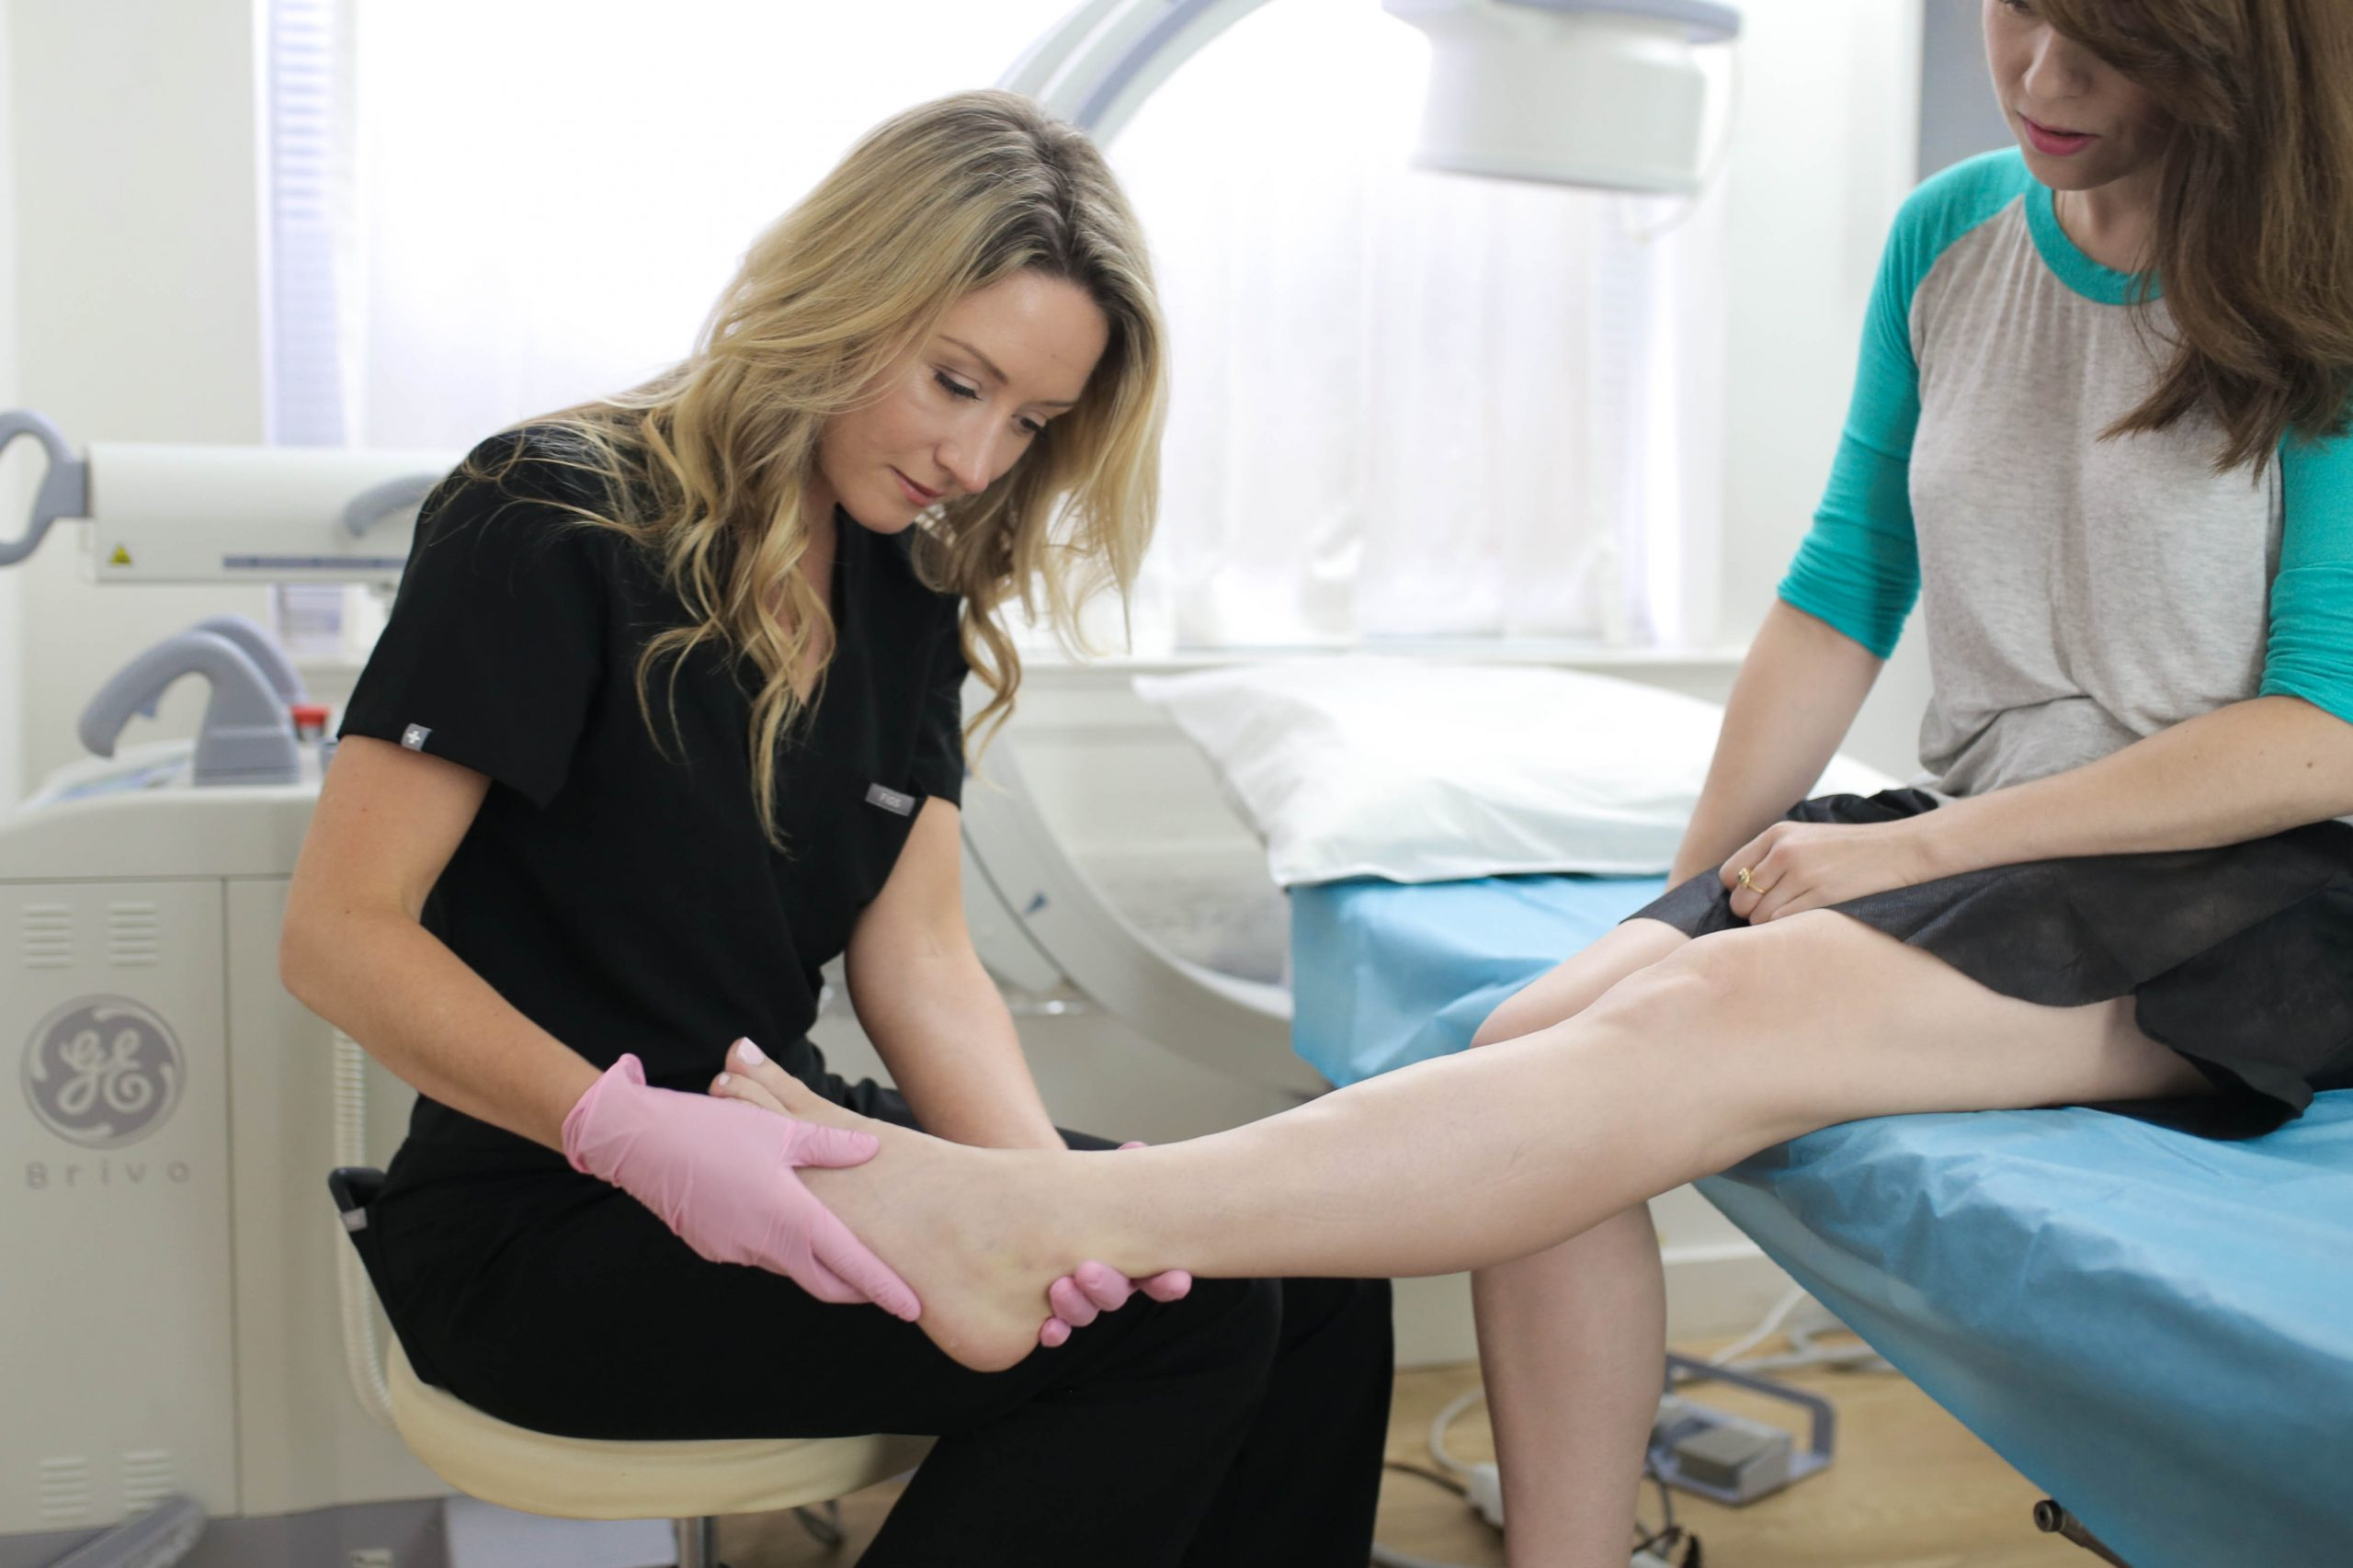 Are you wondering what you can expect during varicose vein treatments? In this article, the best vein clinic in New Jersey describes the best vein treatment plans.